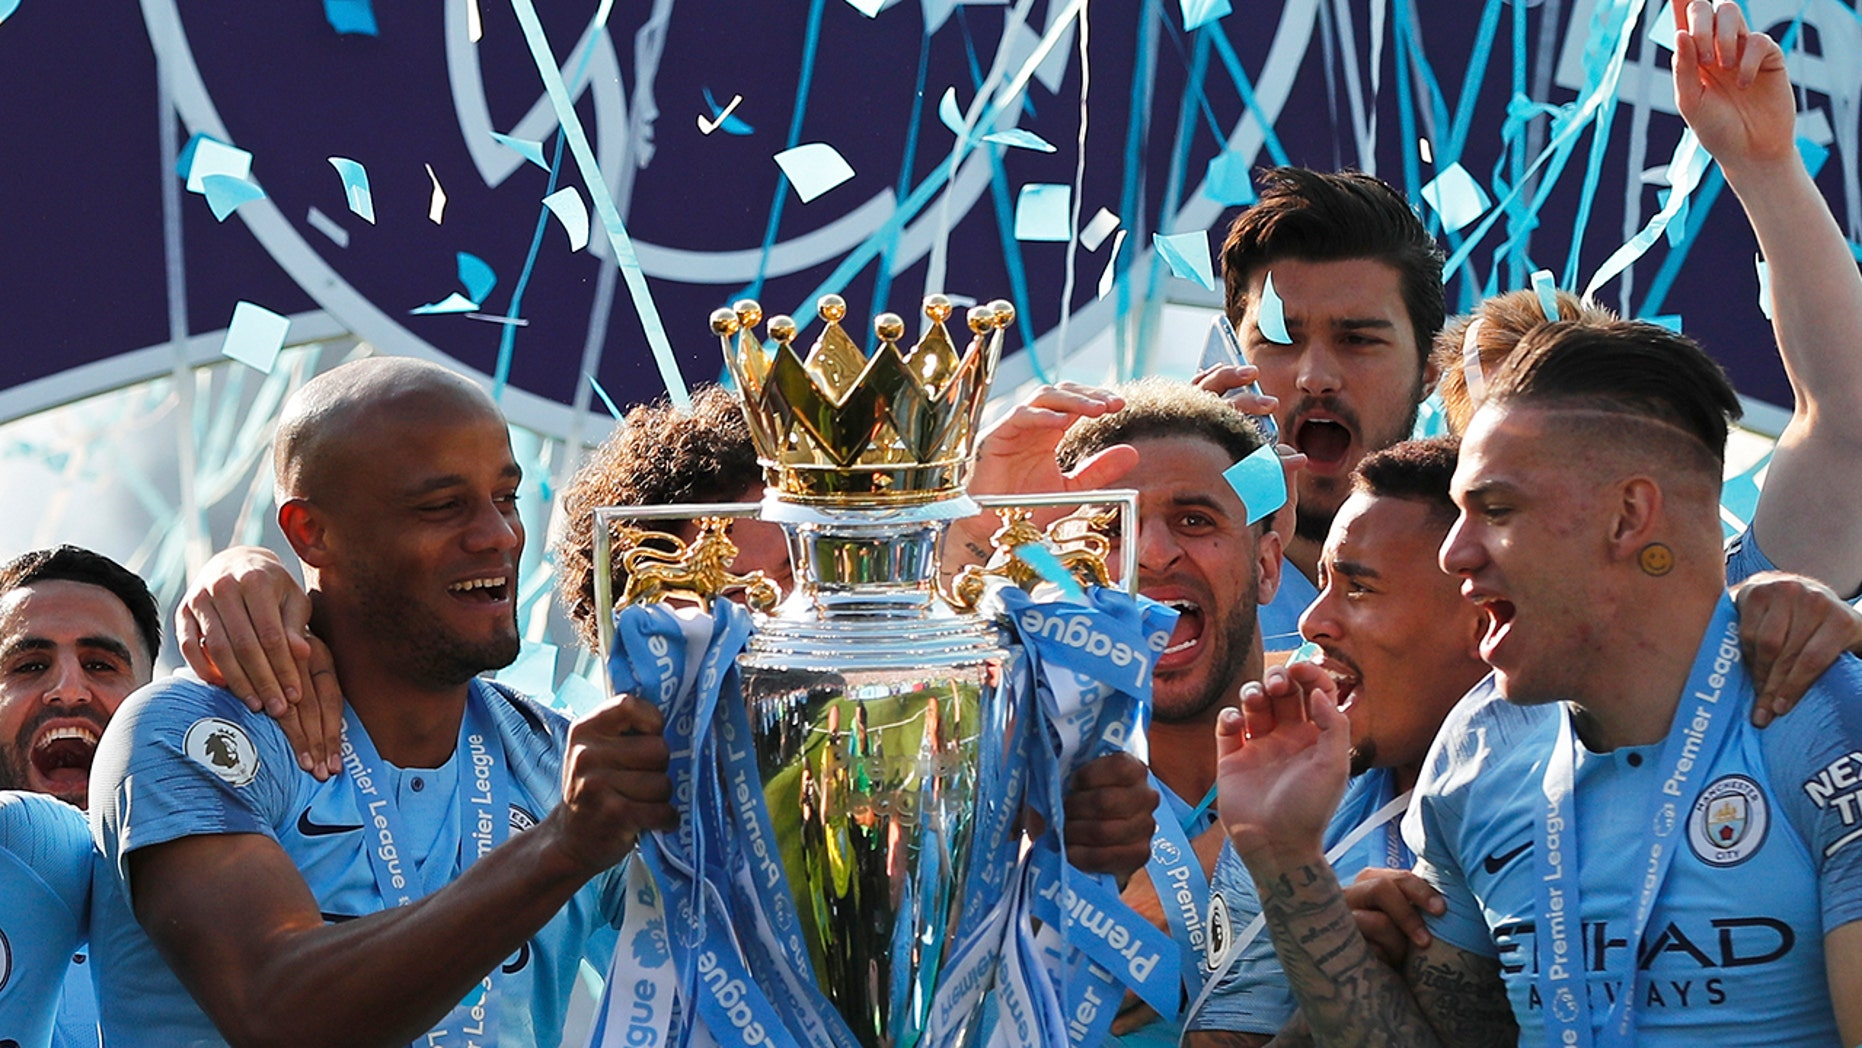 Manchester City's Vincent Kompany lifts the English Premier League trophy after the English Premier League soccer match between Brighton and Manchester City at the AMEX Stadium in Brighton, England, Sunday, May 12, 2019. Manchester City defeated Brighton 4-1 to win the championship. (AP Photo/Frank Augstein)